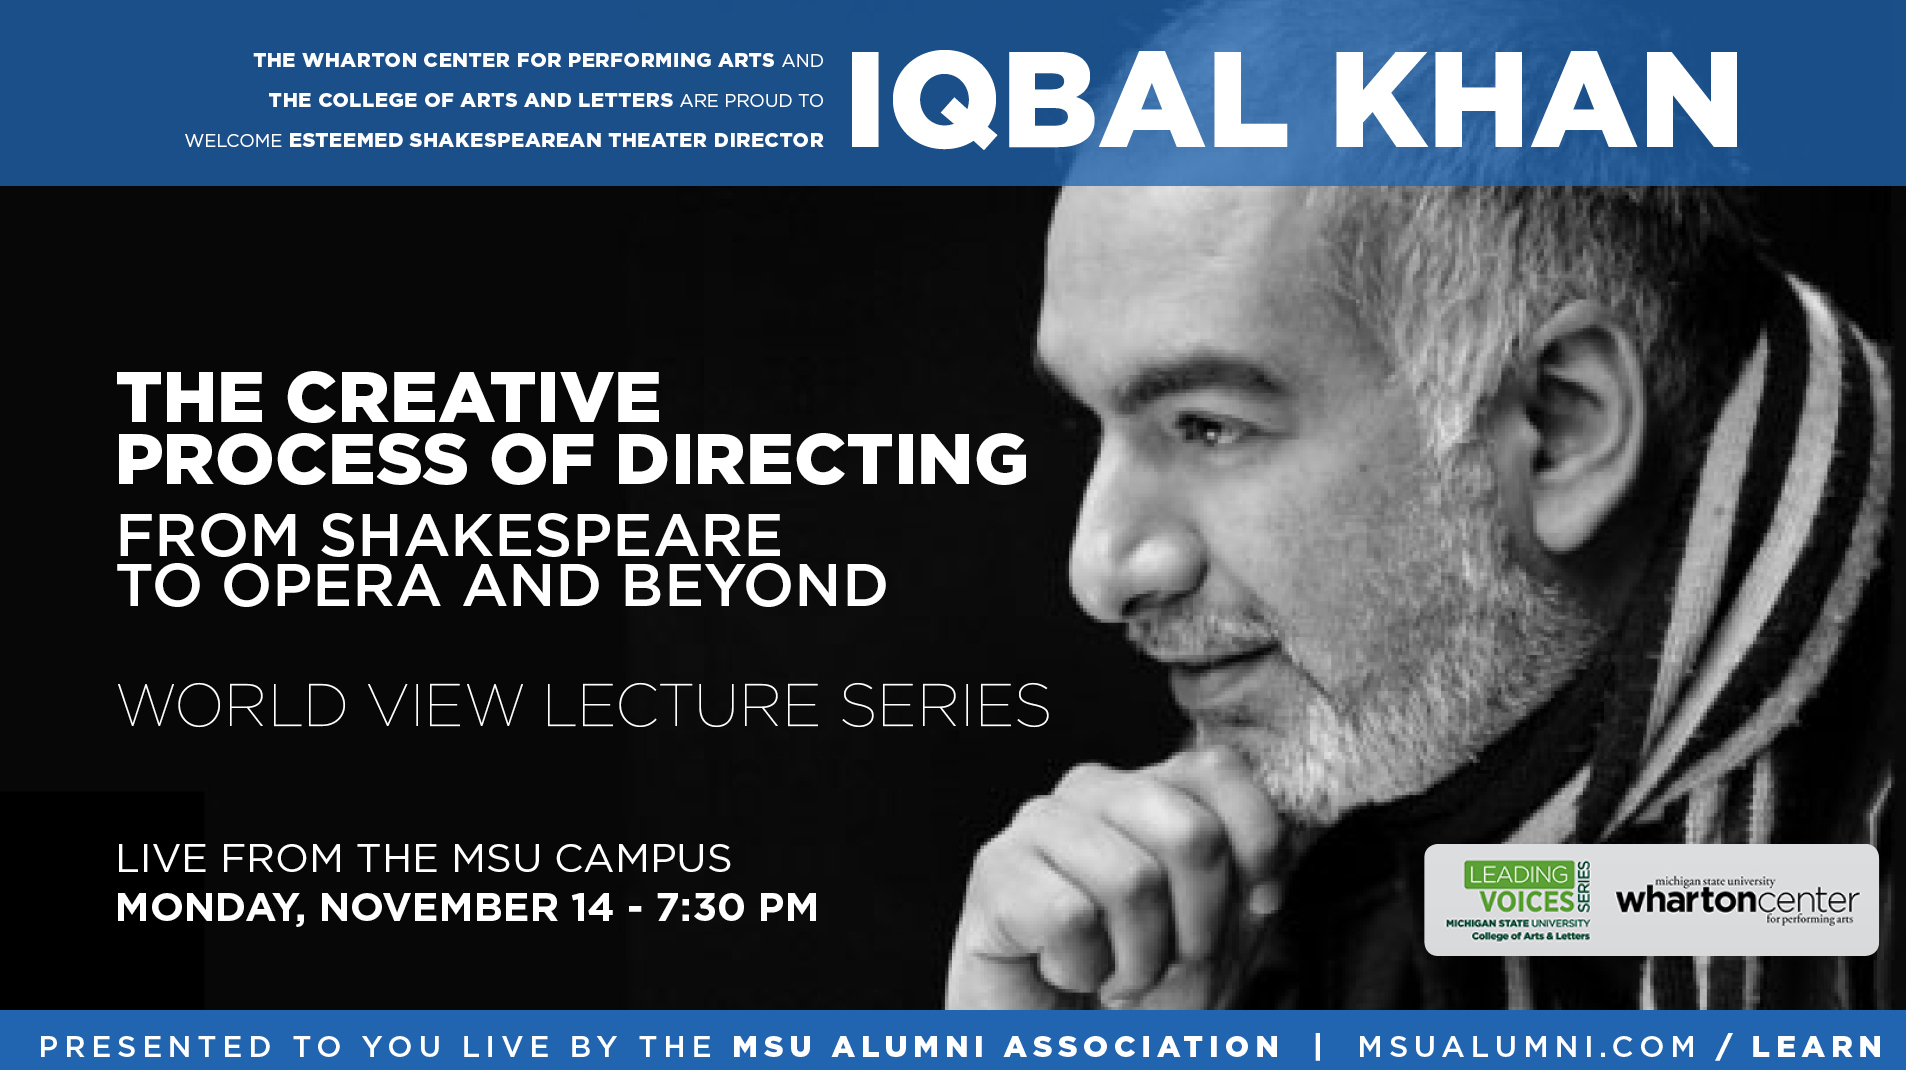 livestream cover image for Iqbal Khan | The Creative Process of Directing: From Shakespeare to Opera & Beyond